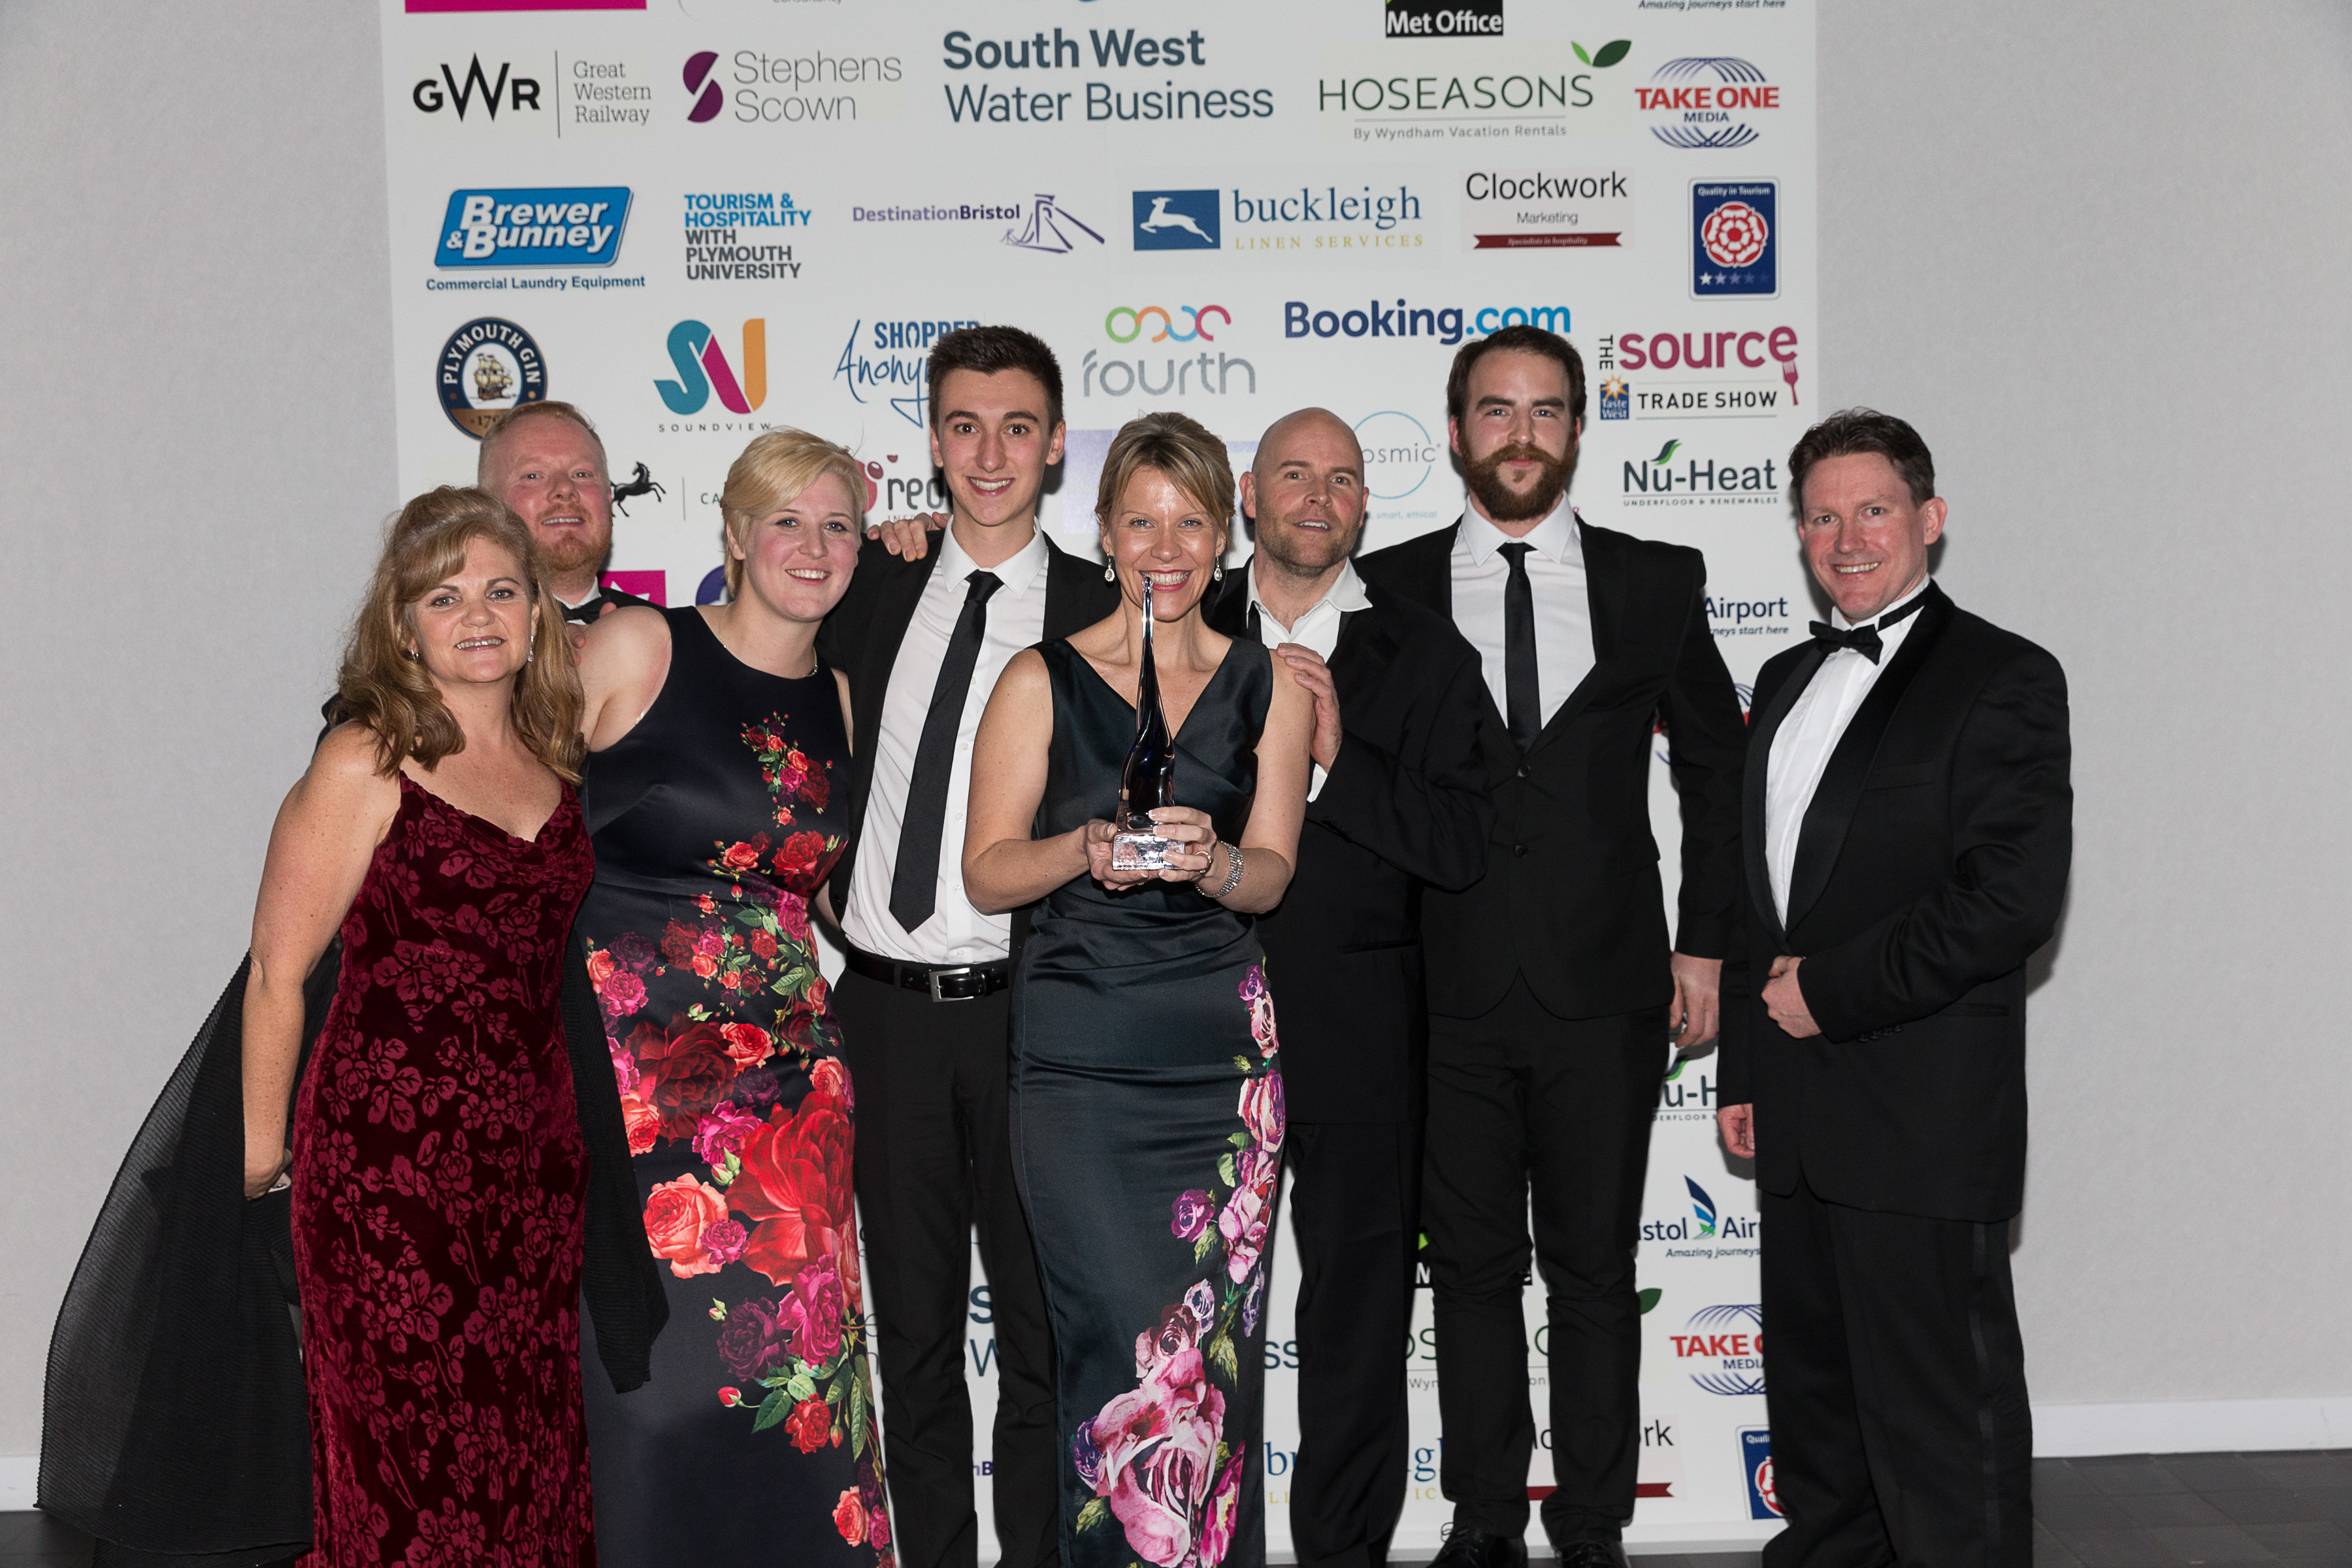 Soundview congratulate National Tourism Awards nominees. Many South West businesses winning at regional level, going forward to National awards competition